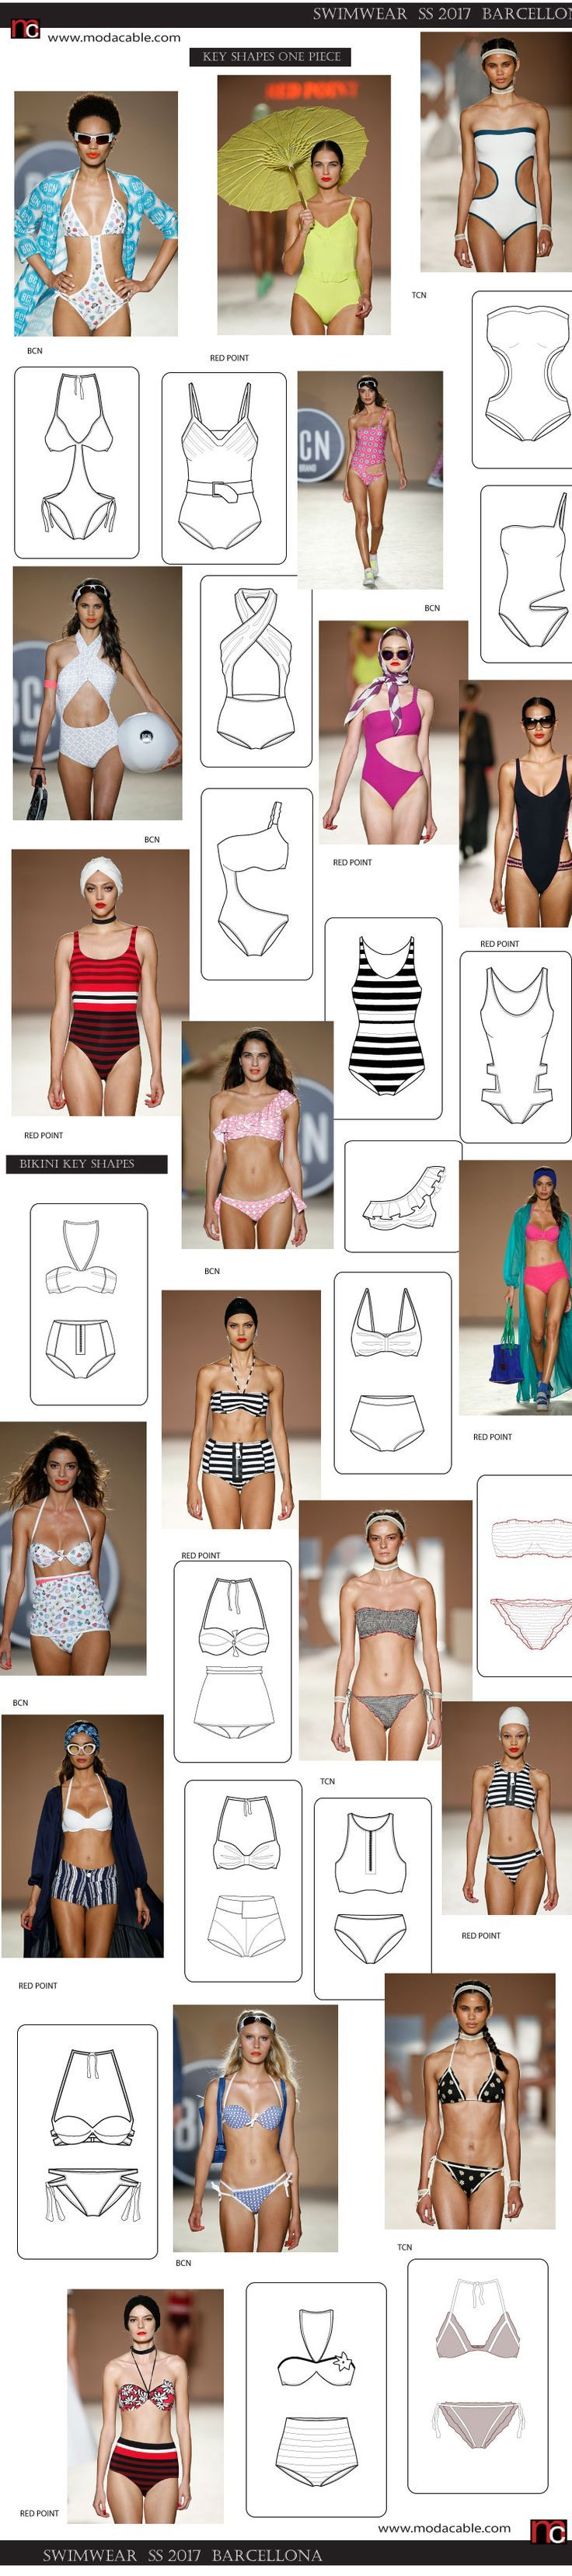 SS 2017 swimwear trends from Barcellona only at www.modacable.com. subscribe to se all...